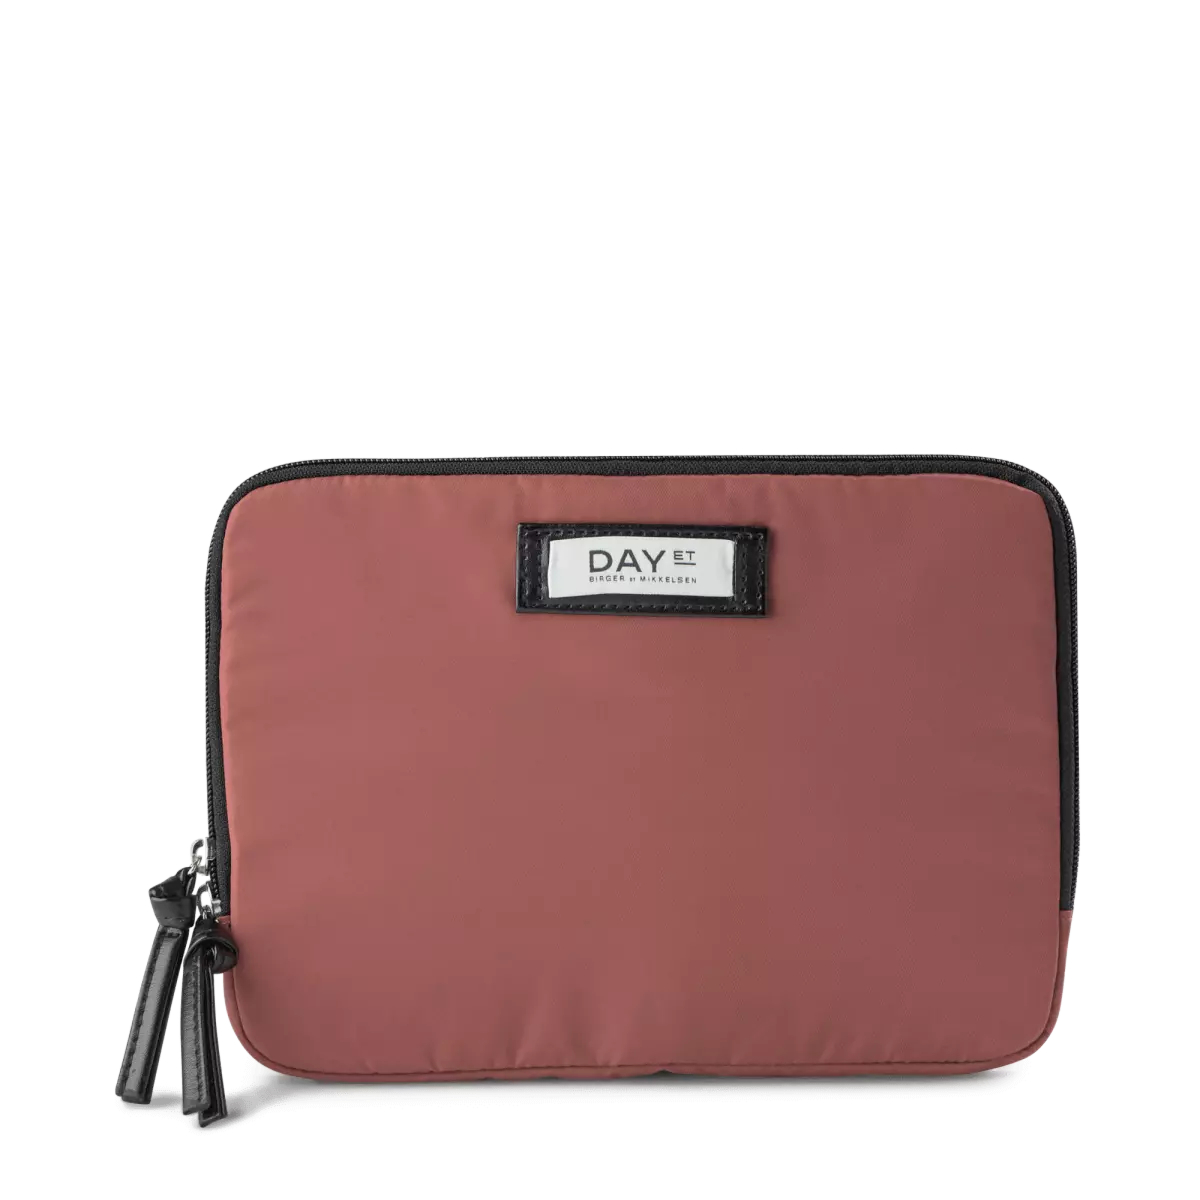 DAY ET Gweneth iPad cover, rose